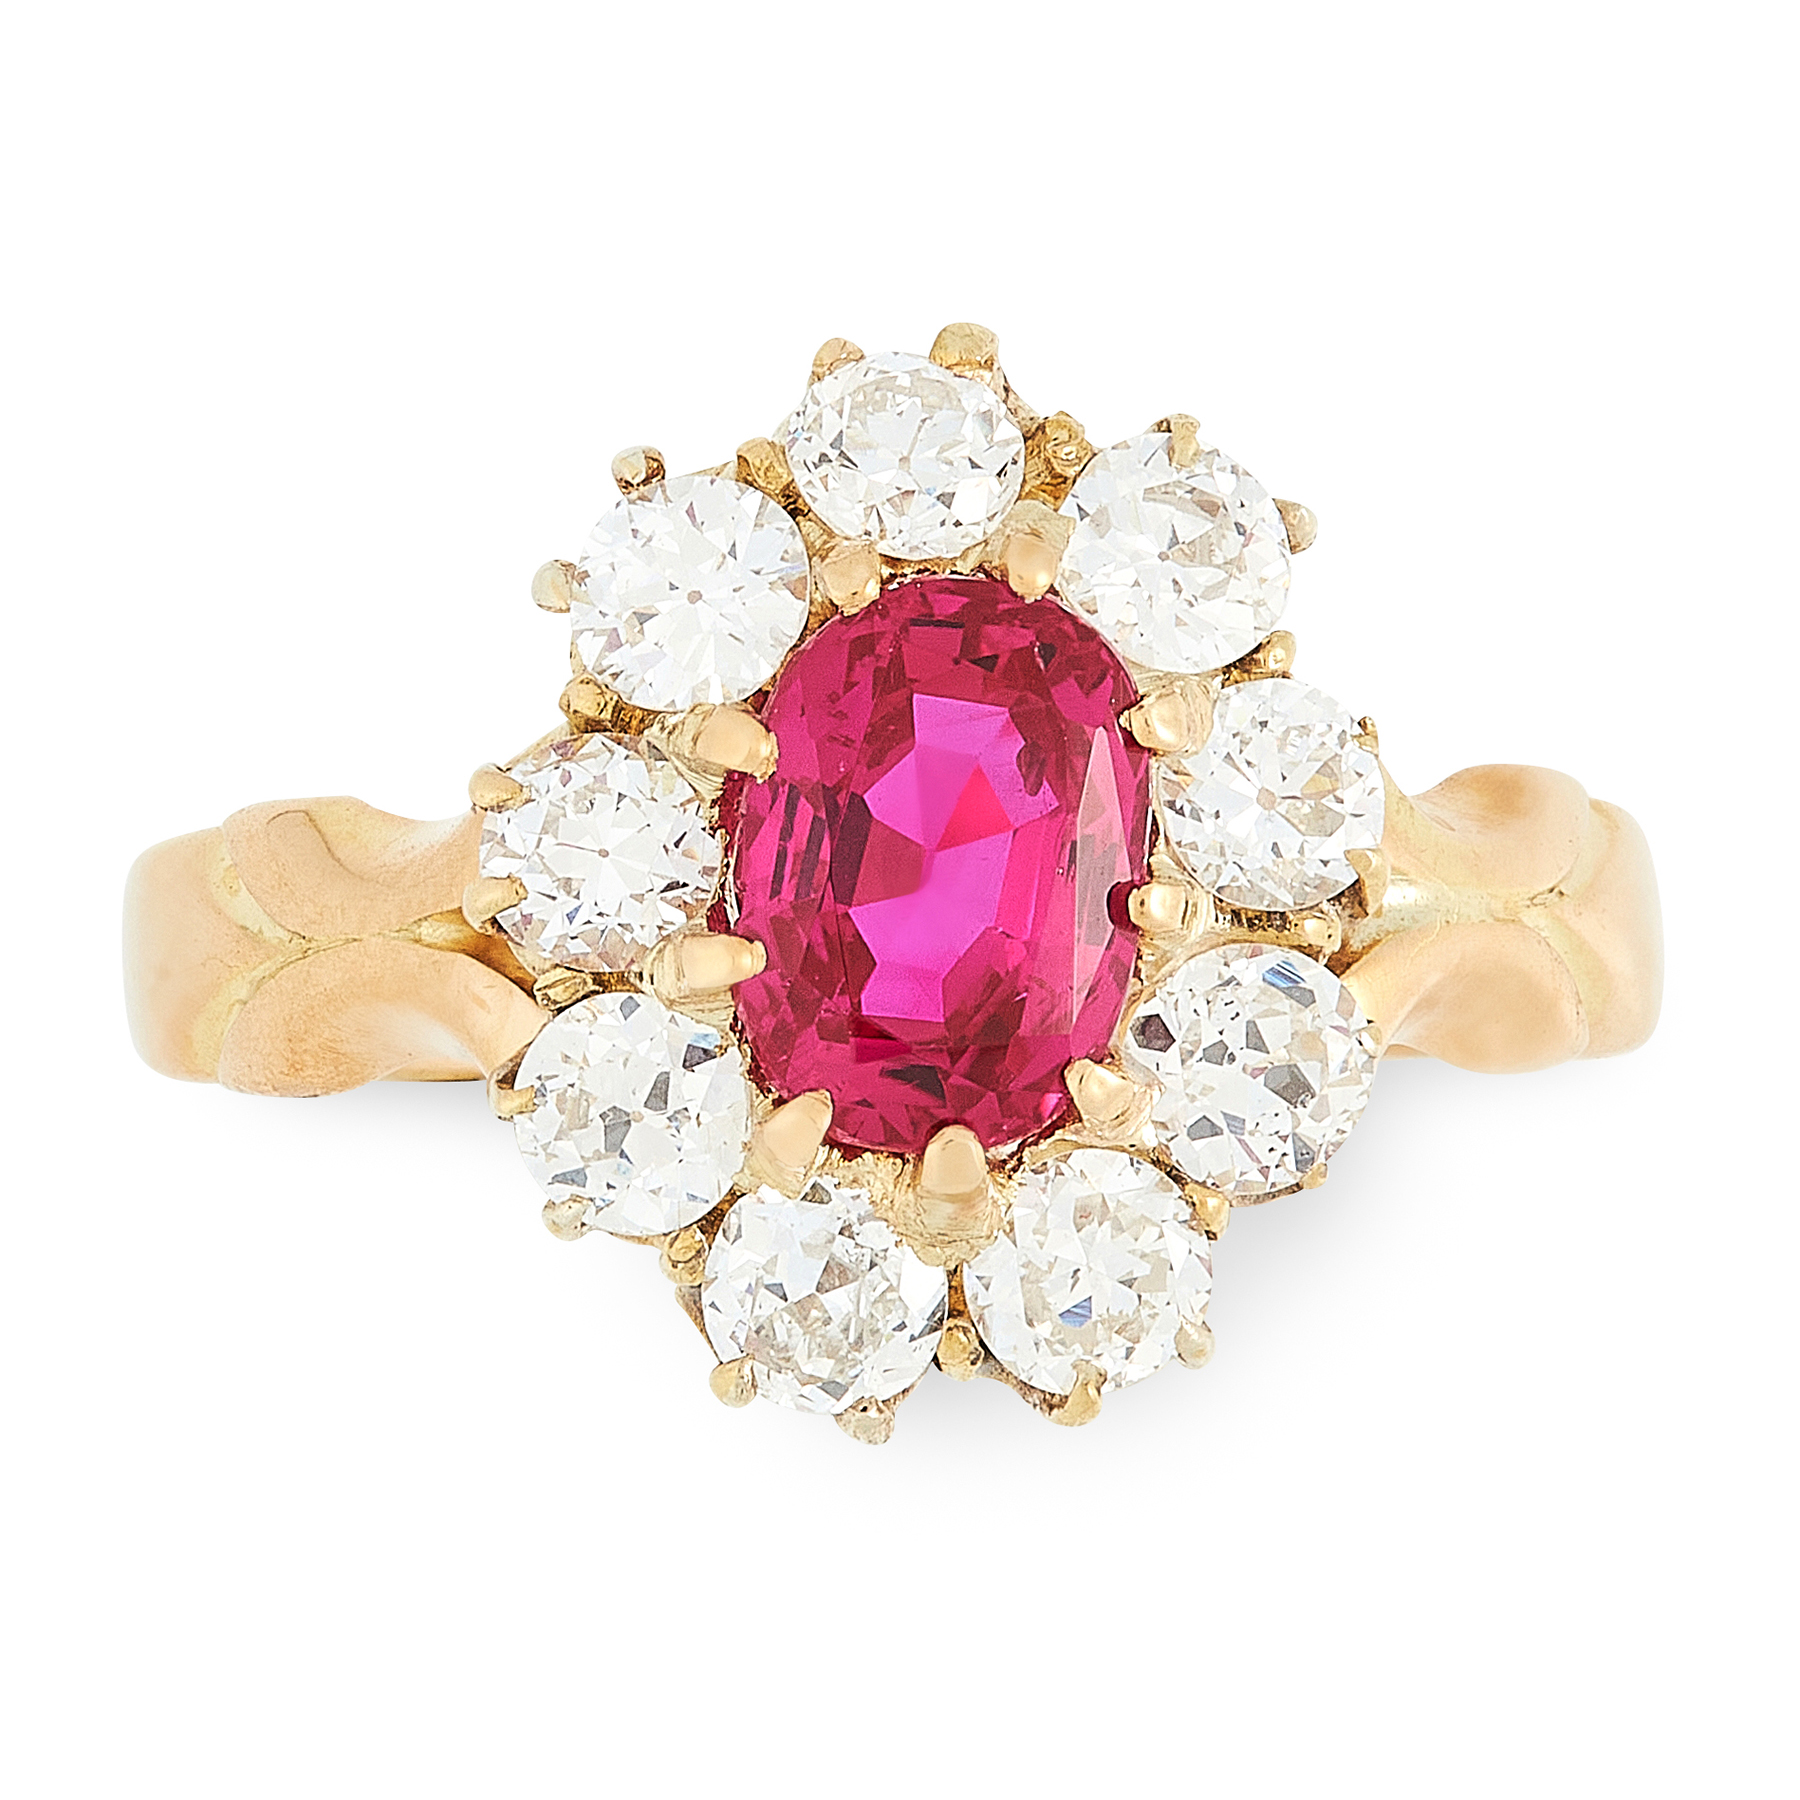 A BURMA NO HEAT RUBY AND DIAMOND RING in 18ct yellow gold, set with an oval cut ruby of 1.38